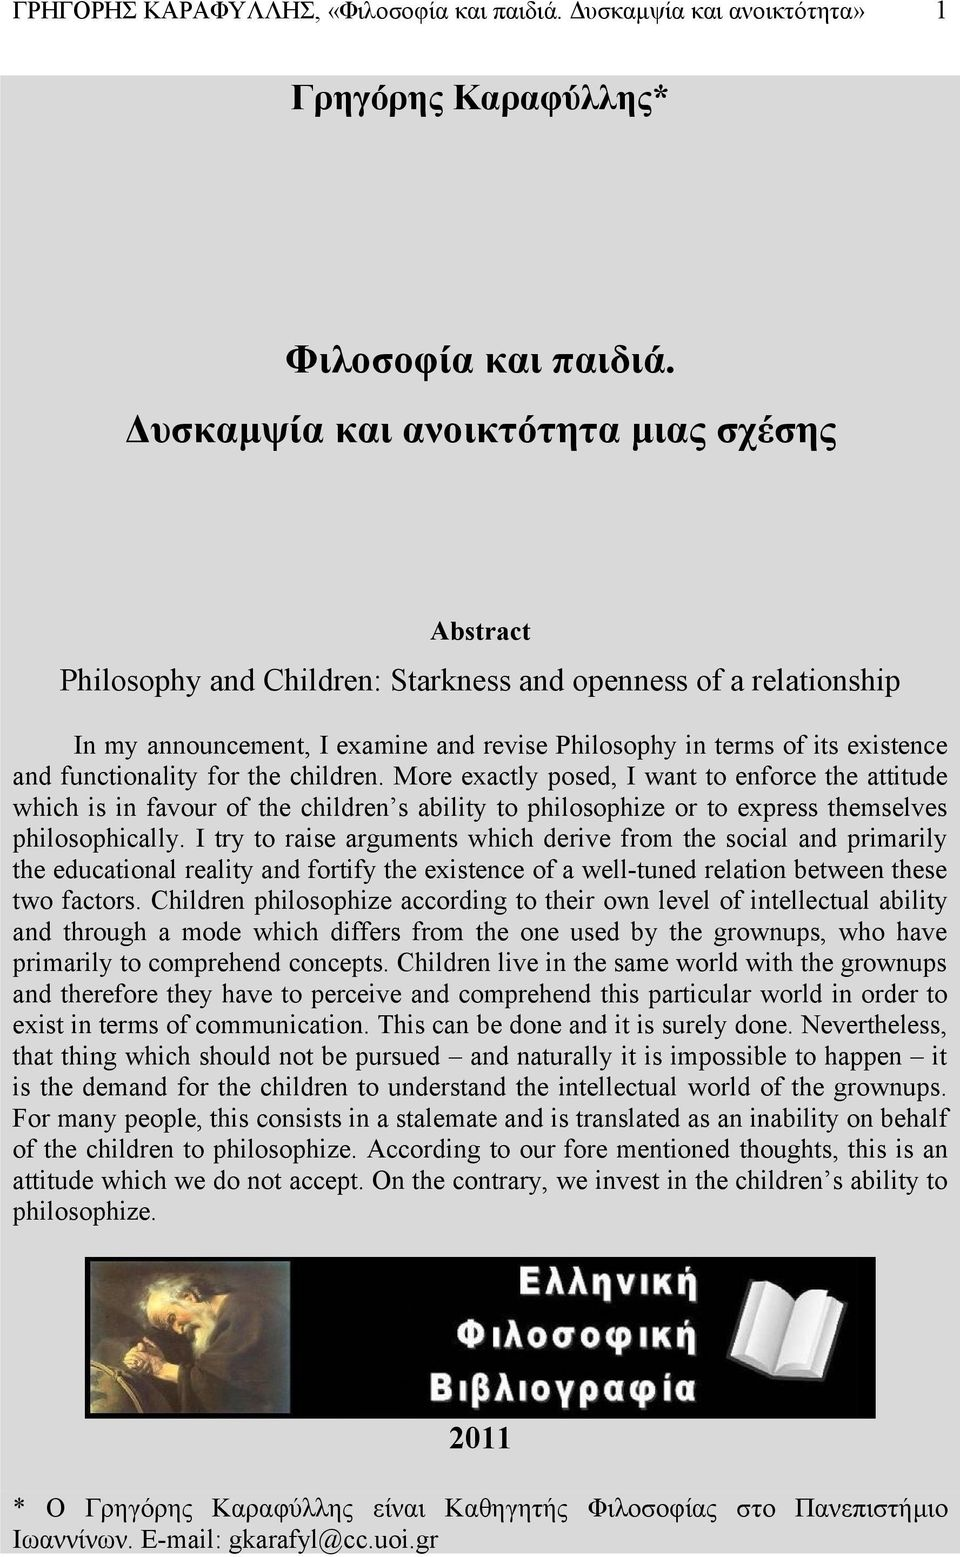 functionality for the children. More exactly posed, I want to enforce the attitude which is in favour of the children s ability to philosophize or to express themselves philosophically.